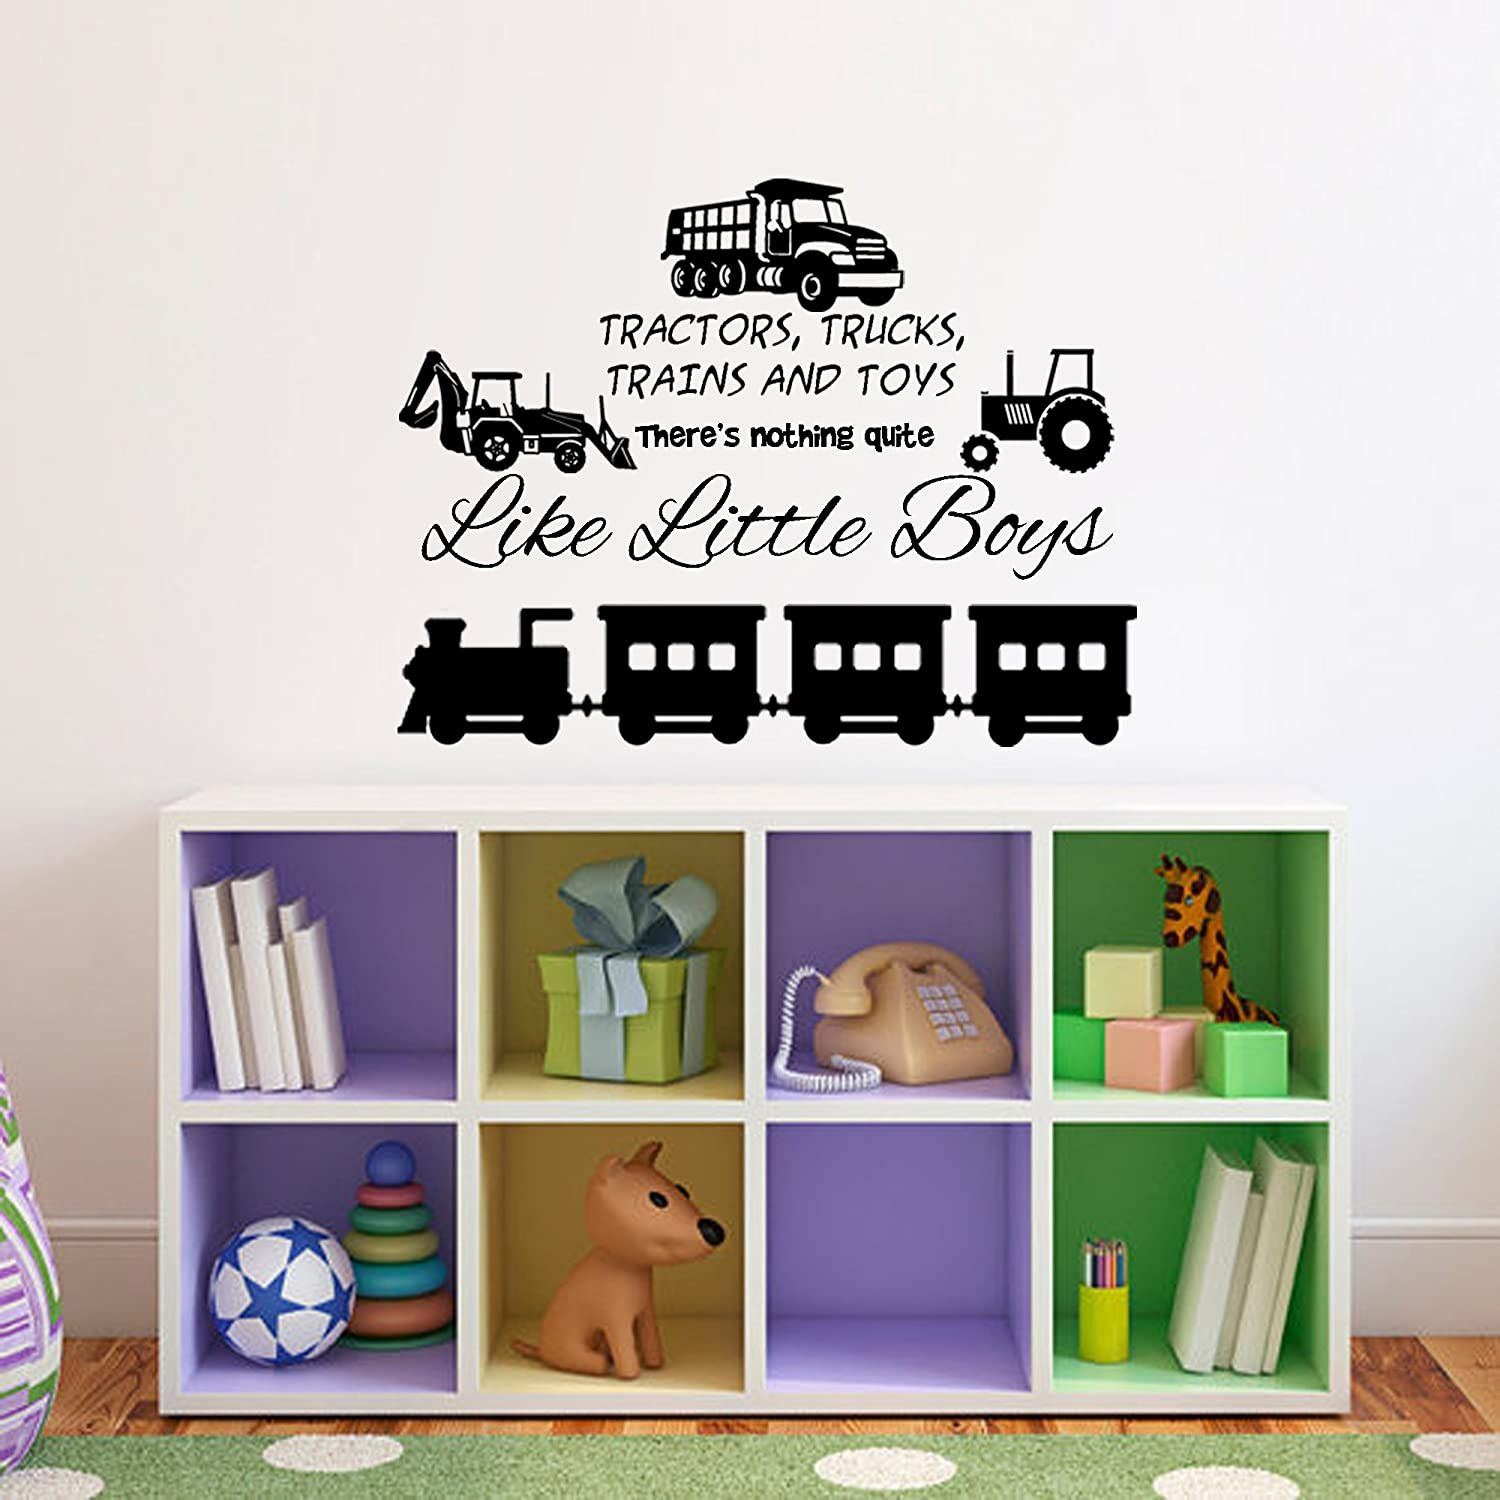 Amazon tractors trucks trains and toys theres nothing amazon tractors trucks trains and toys theres nothing quite like little boys playroomnursery wall decal black 30w x 22h home kitchen amipublicfo Gallery